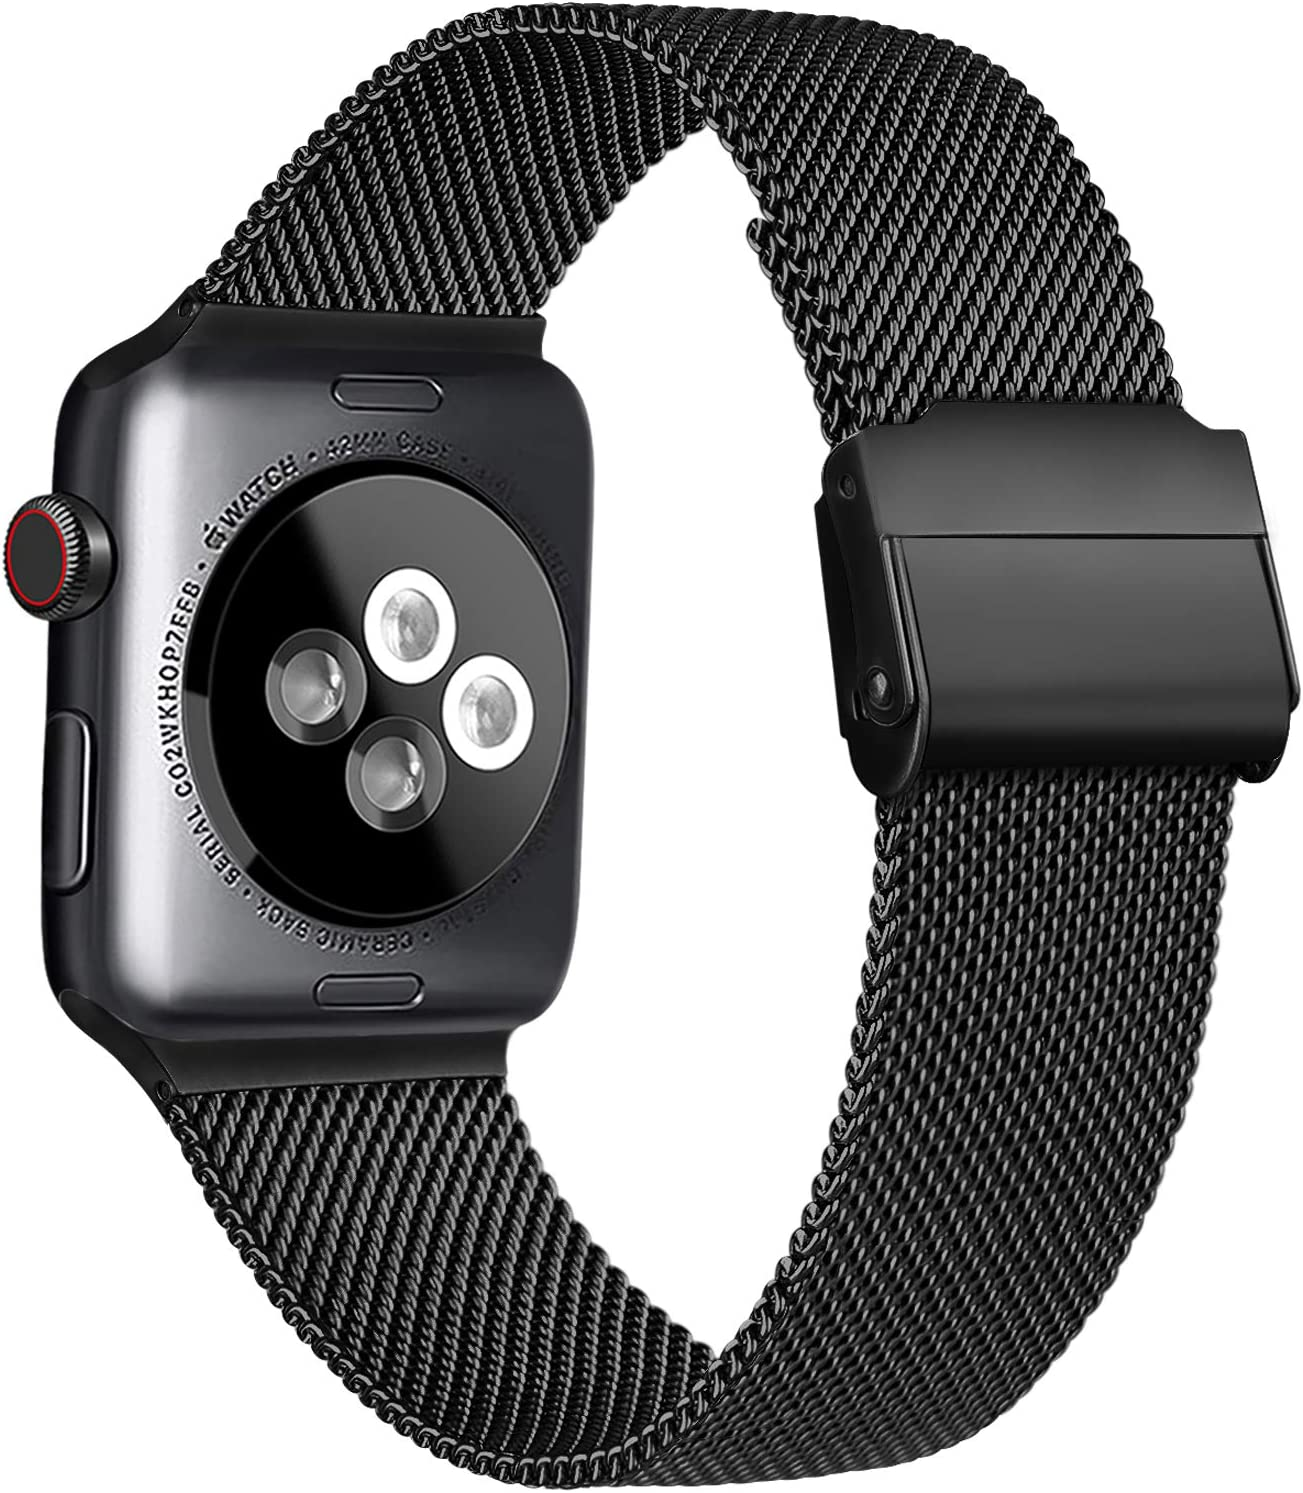 Meliya Compatible with Apple Watch Band 44mm 42mm 40mm 38mm, Stainless Steel Mesh Sport Wristband Compatible for iWatch Series SE 6 5 4 3 2 1 (38mm/40mm, Black)